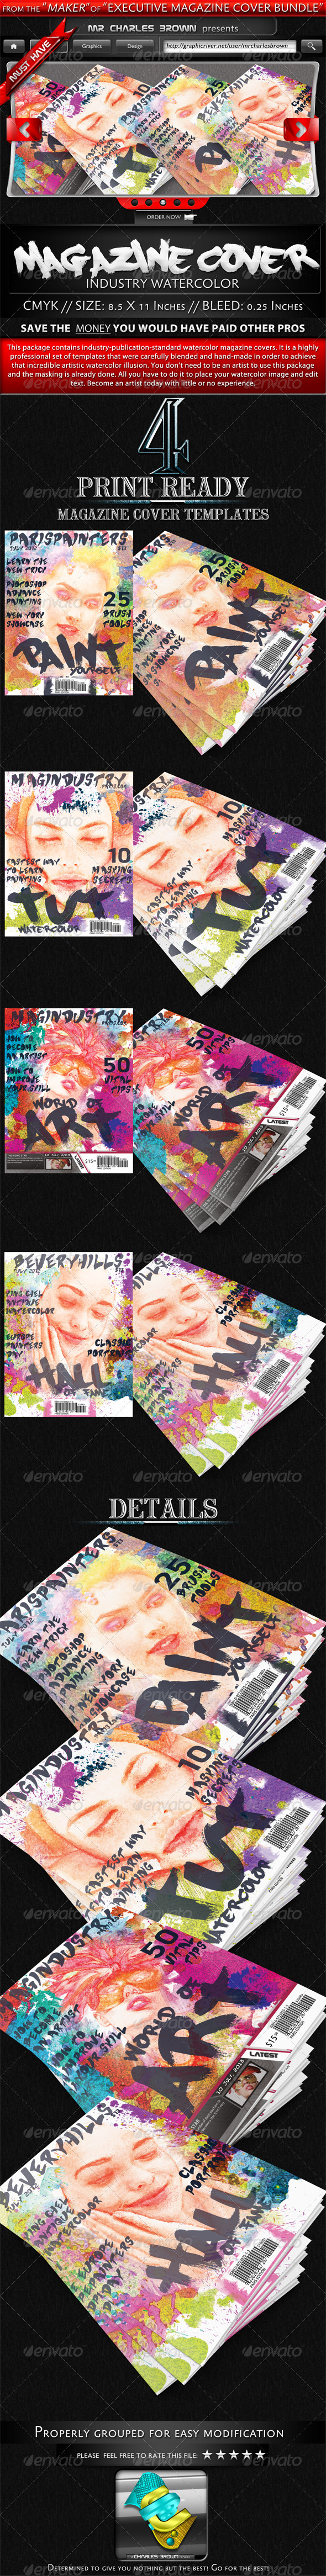 Industry Watercolor Magazine Cover Templates - Magazines Print Templates